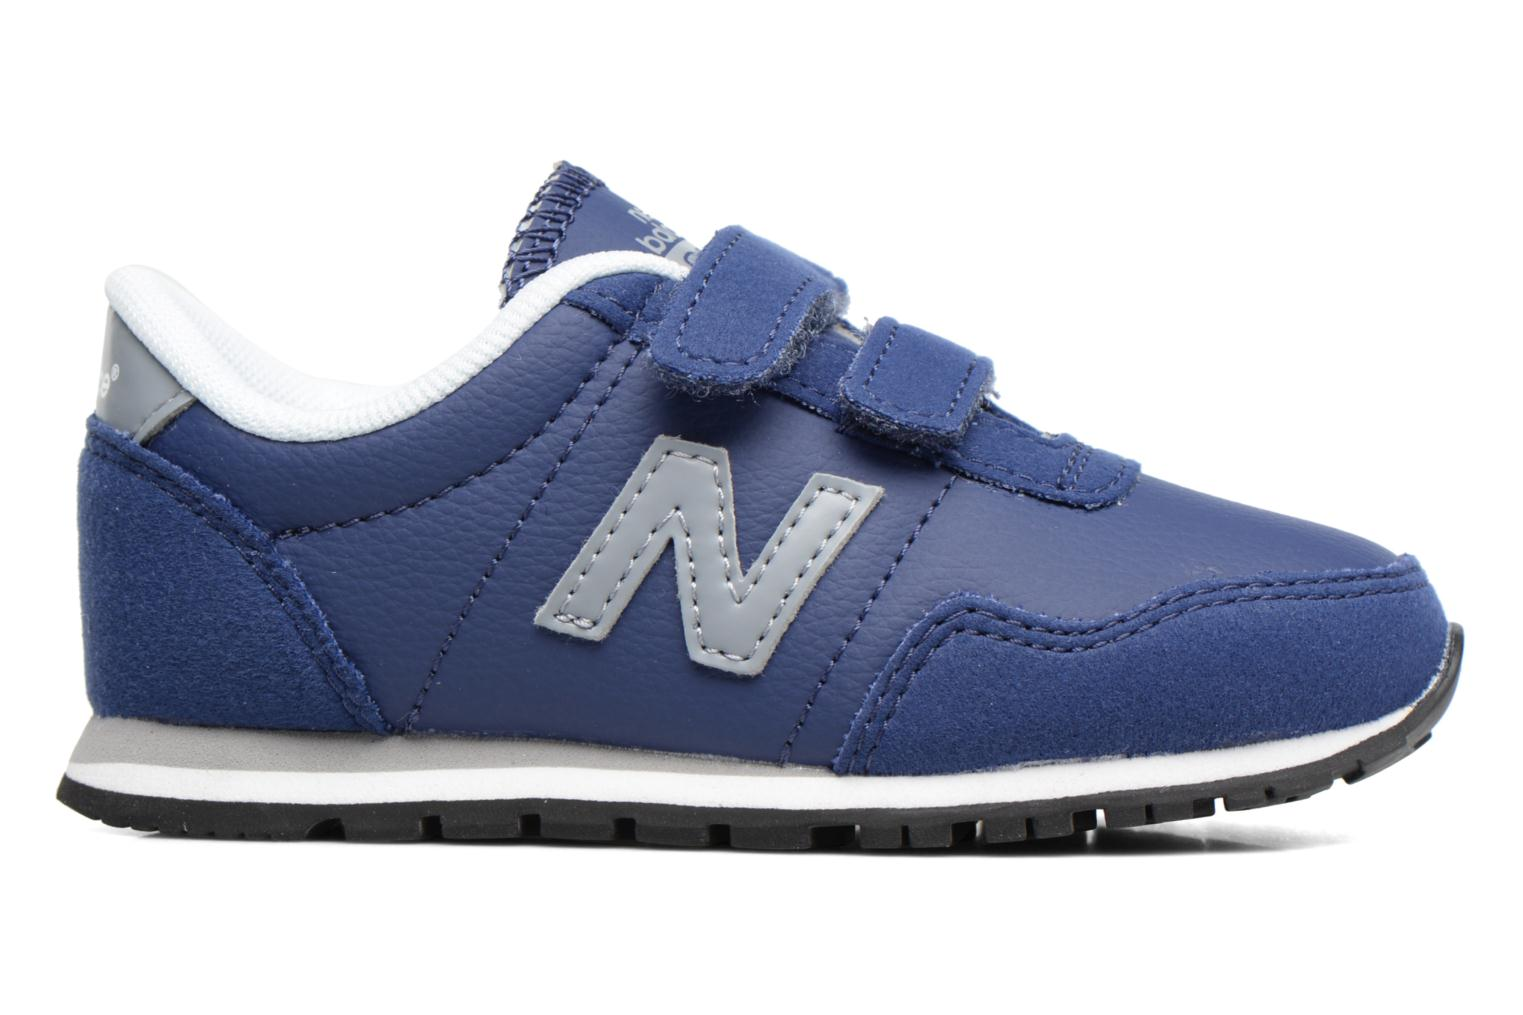 KV396 M Cai Blue/Grey